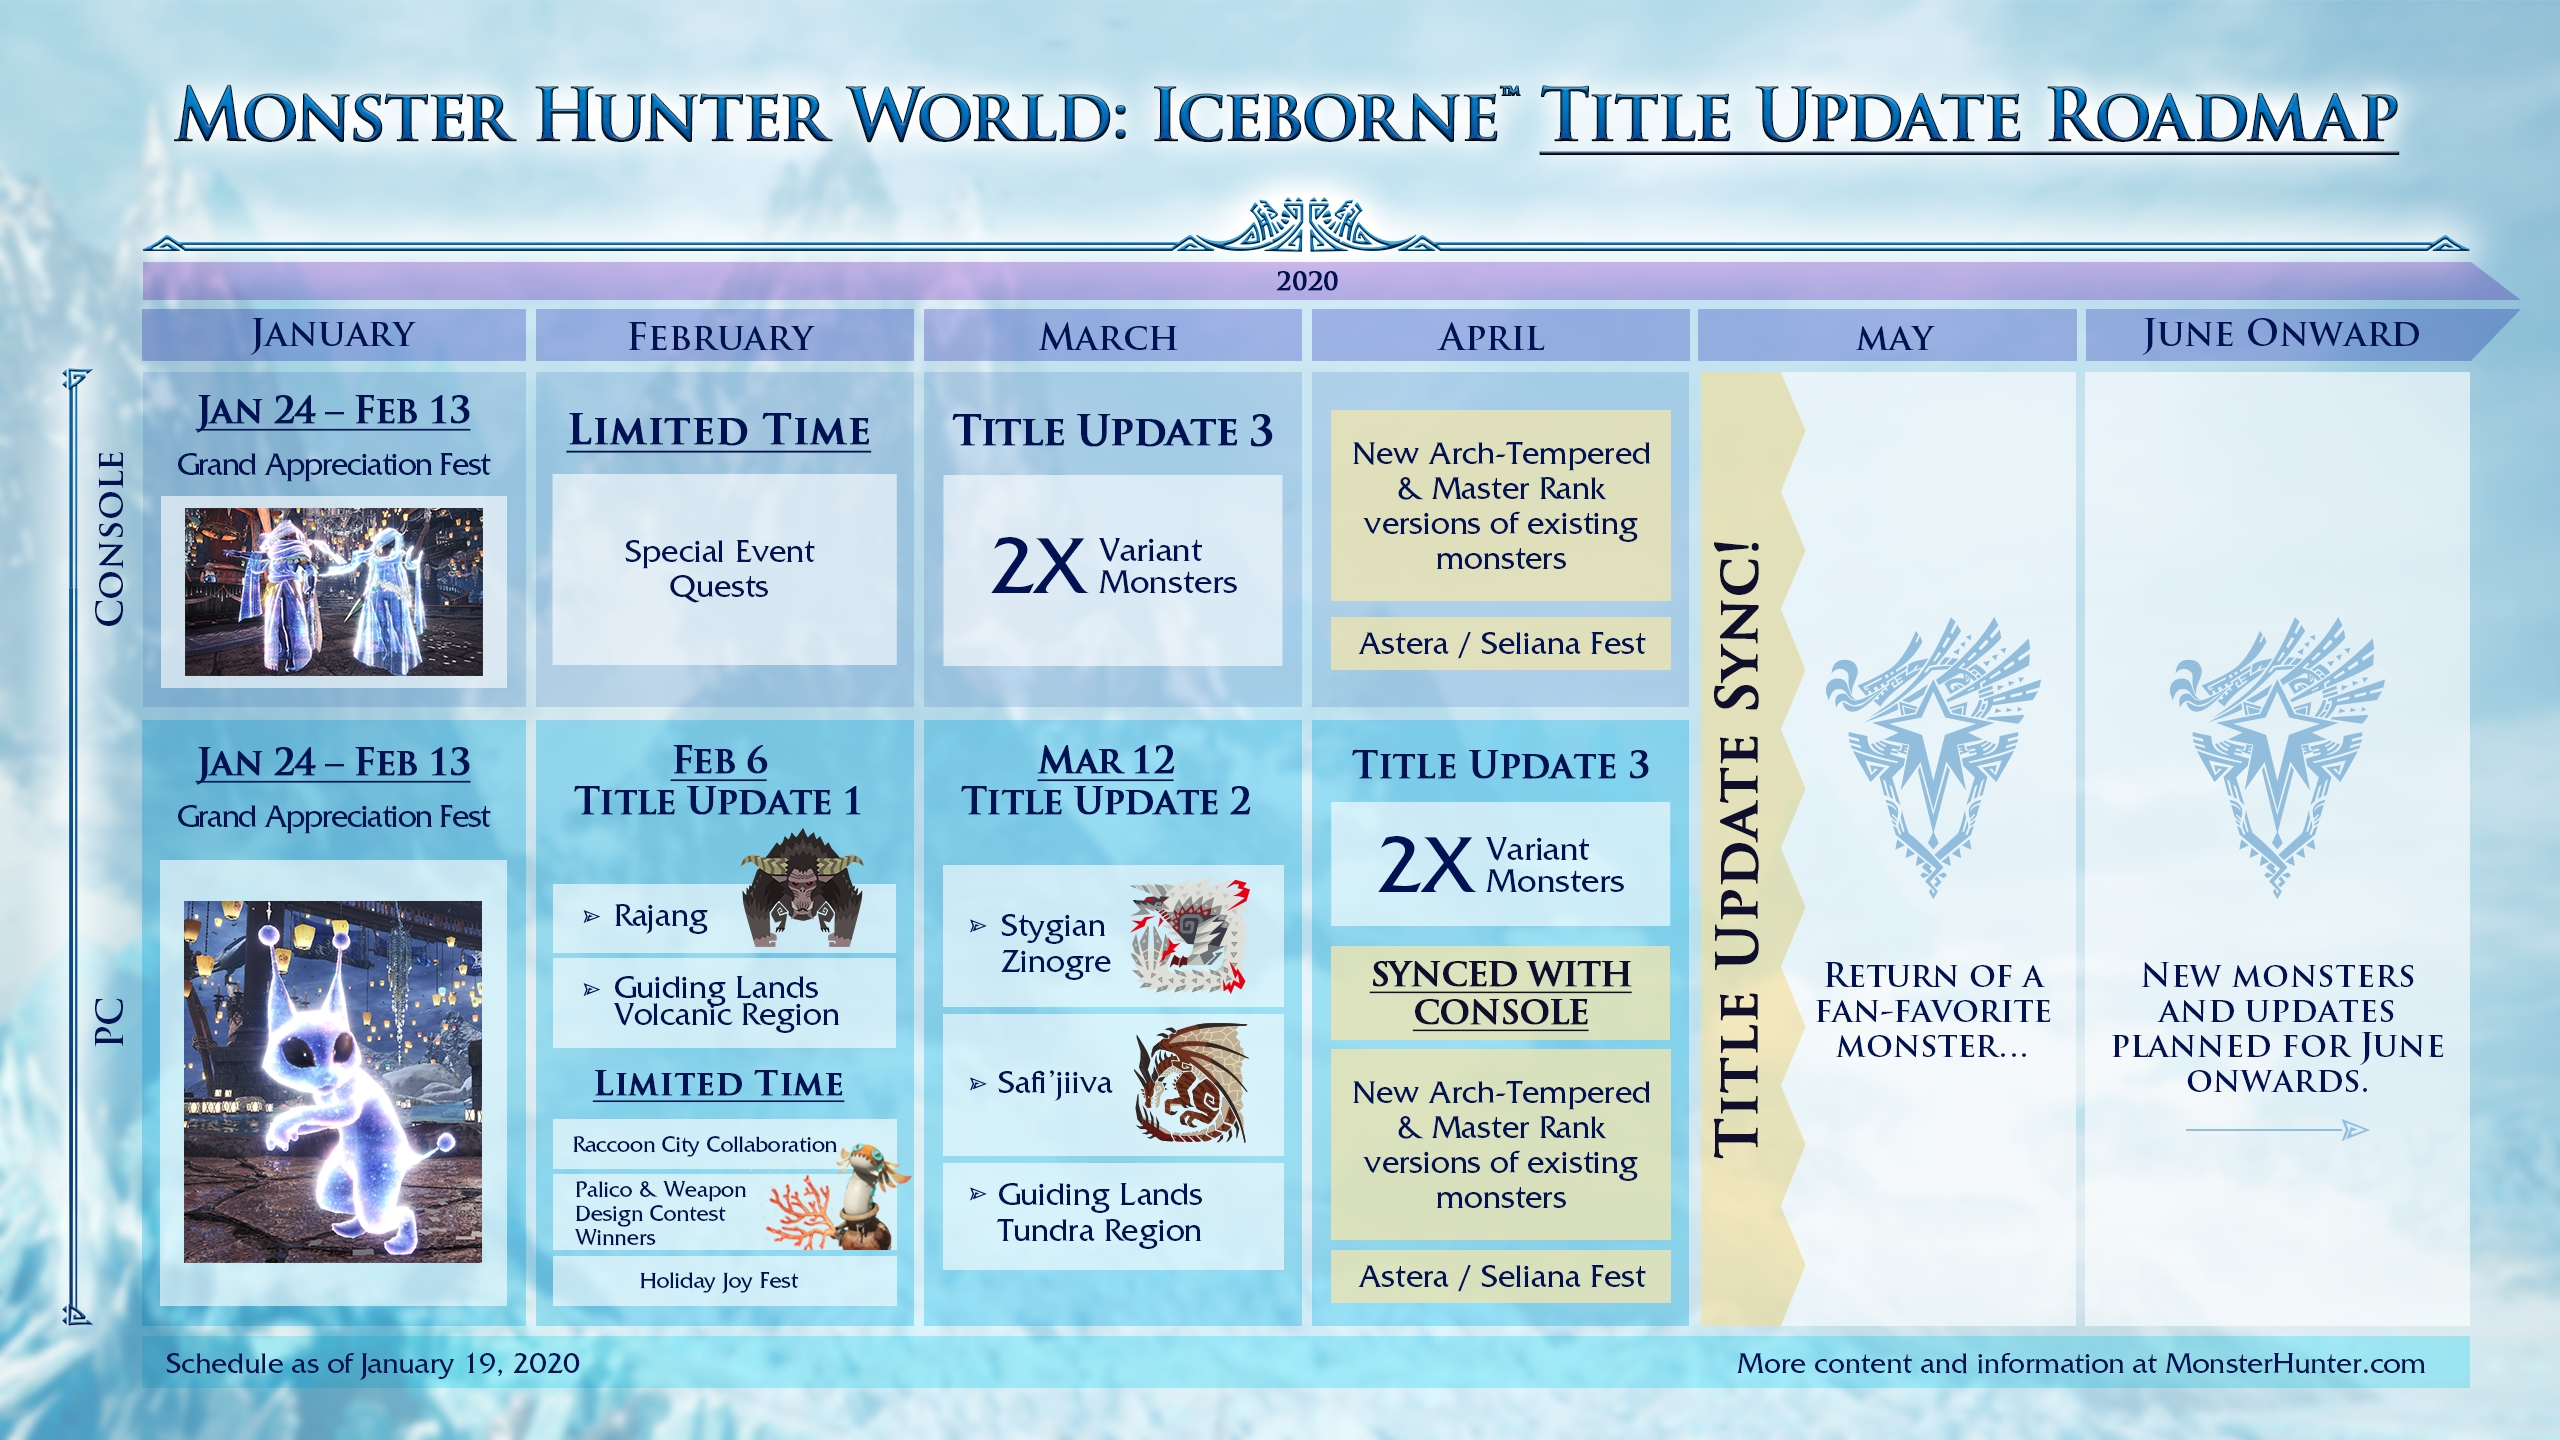 Monster Hunter World: Iceborne Master Edition, Monster Hunter World, Master Edition, PlayStation 4, Xbox One, North America, US, Japan, Asia, Europe, Capcom, update, Australia, news, roadmap, 2020 roadmap, PC, features, gameplay, price, release date, Iceborne